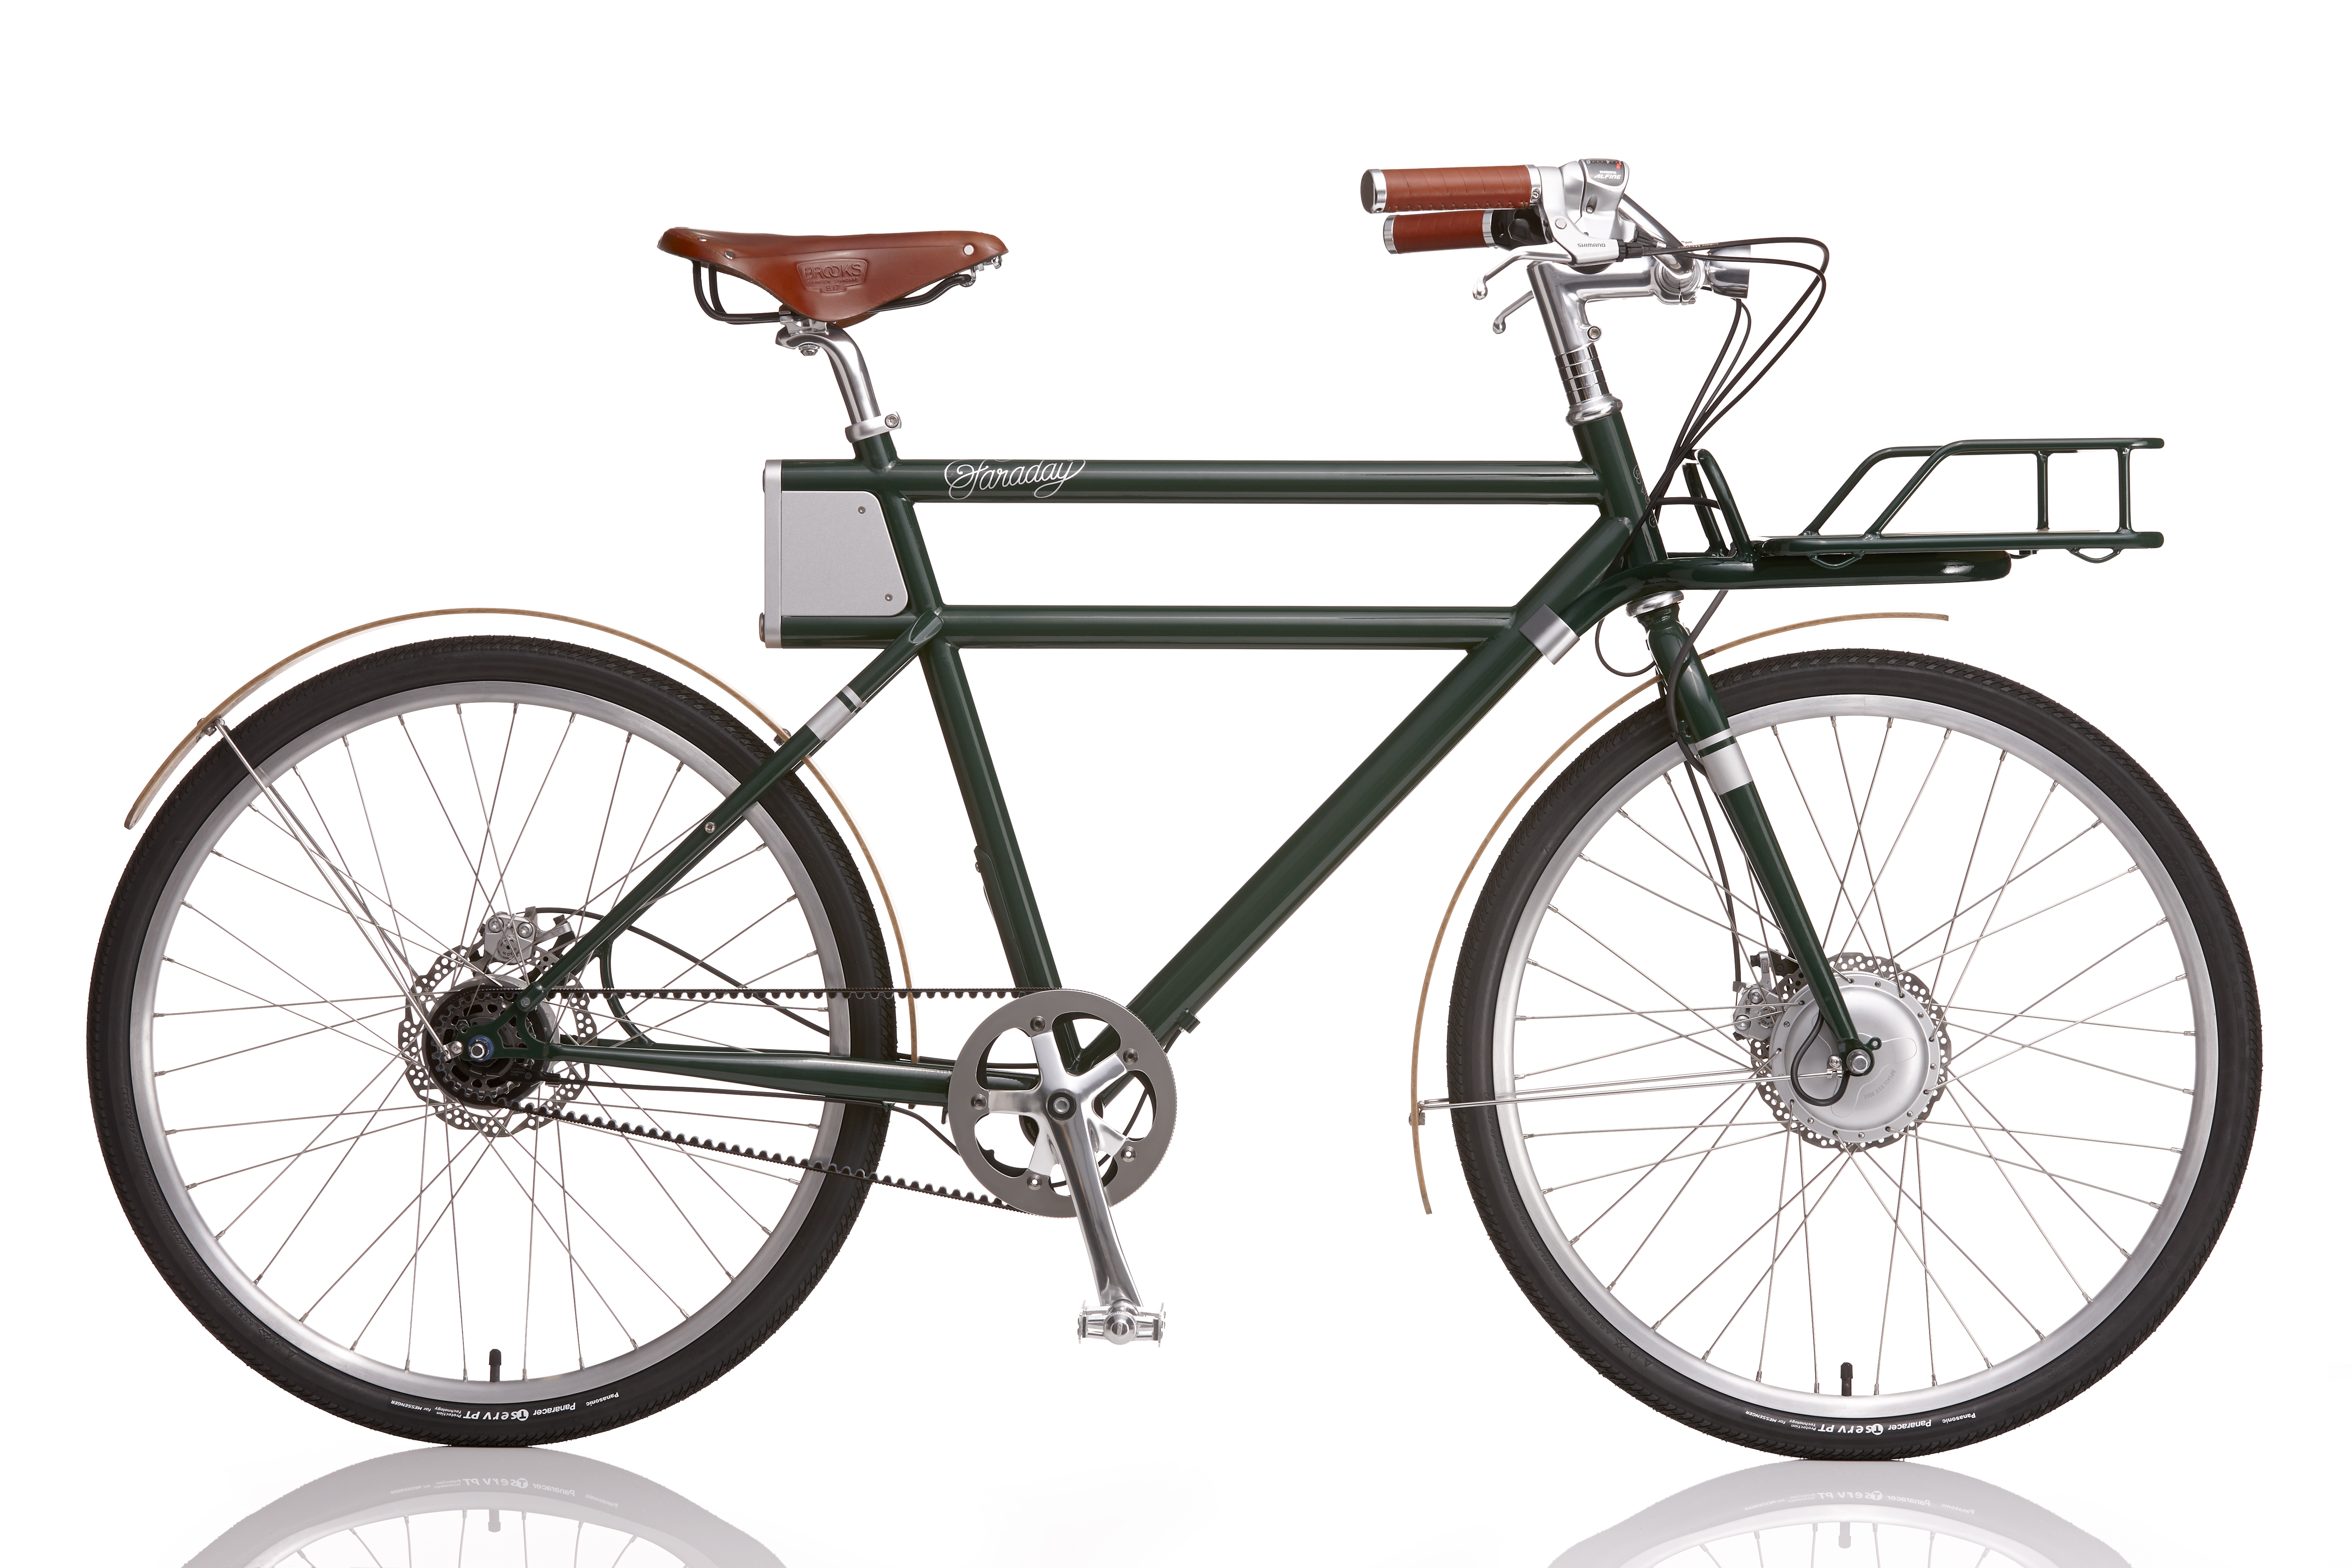 Faraday_profile with porteur rack_BRG